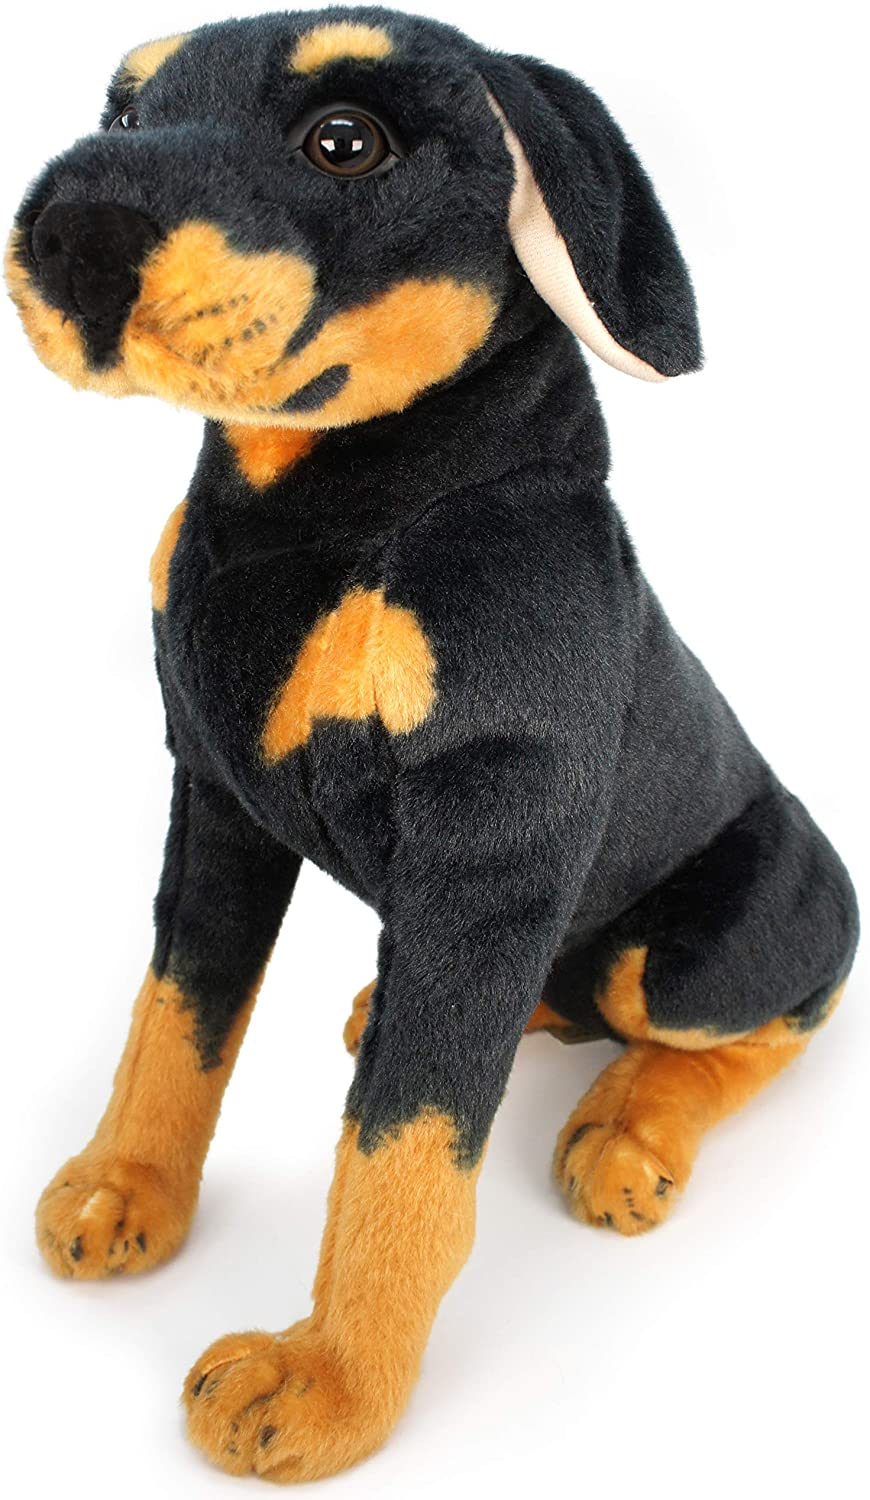 Rodolf The Rottweiler - 13 Inch Large Dog Stuffed Animal Plush - by Tiger Tale Toys